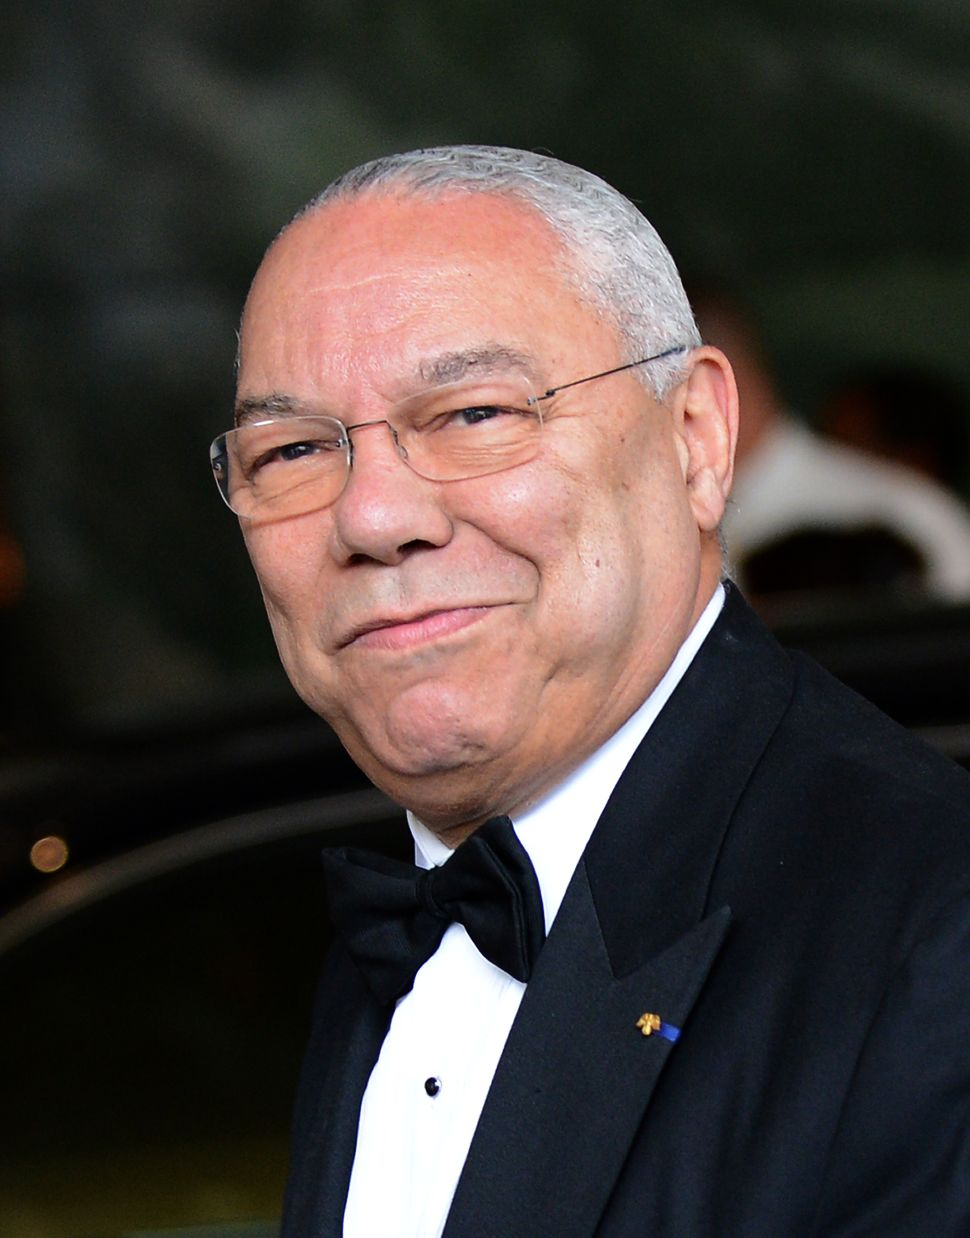 White House Responds To Colin Powell Saying He's Not Ready To Endorse Obama Again